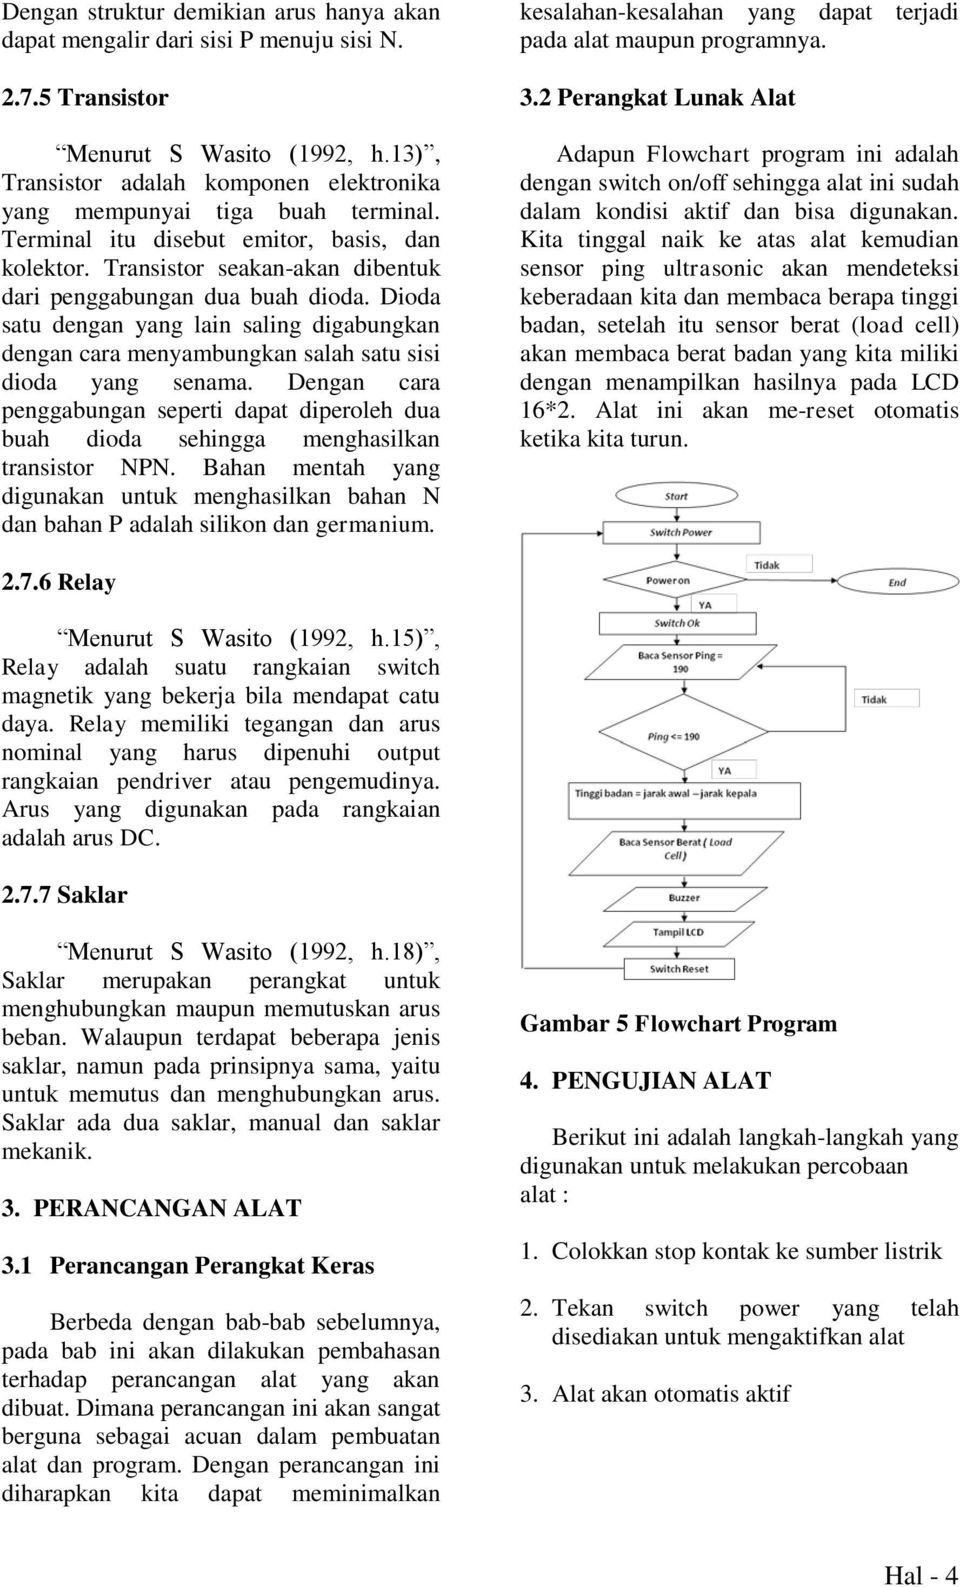 journal alat ukur berat dan volum